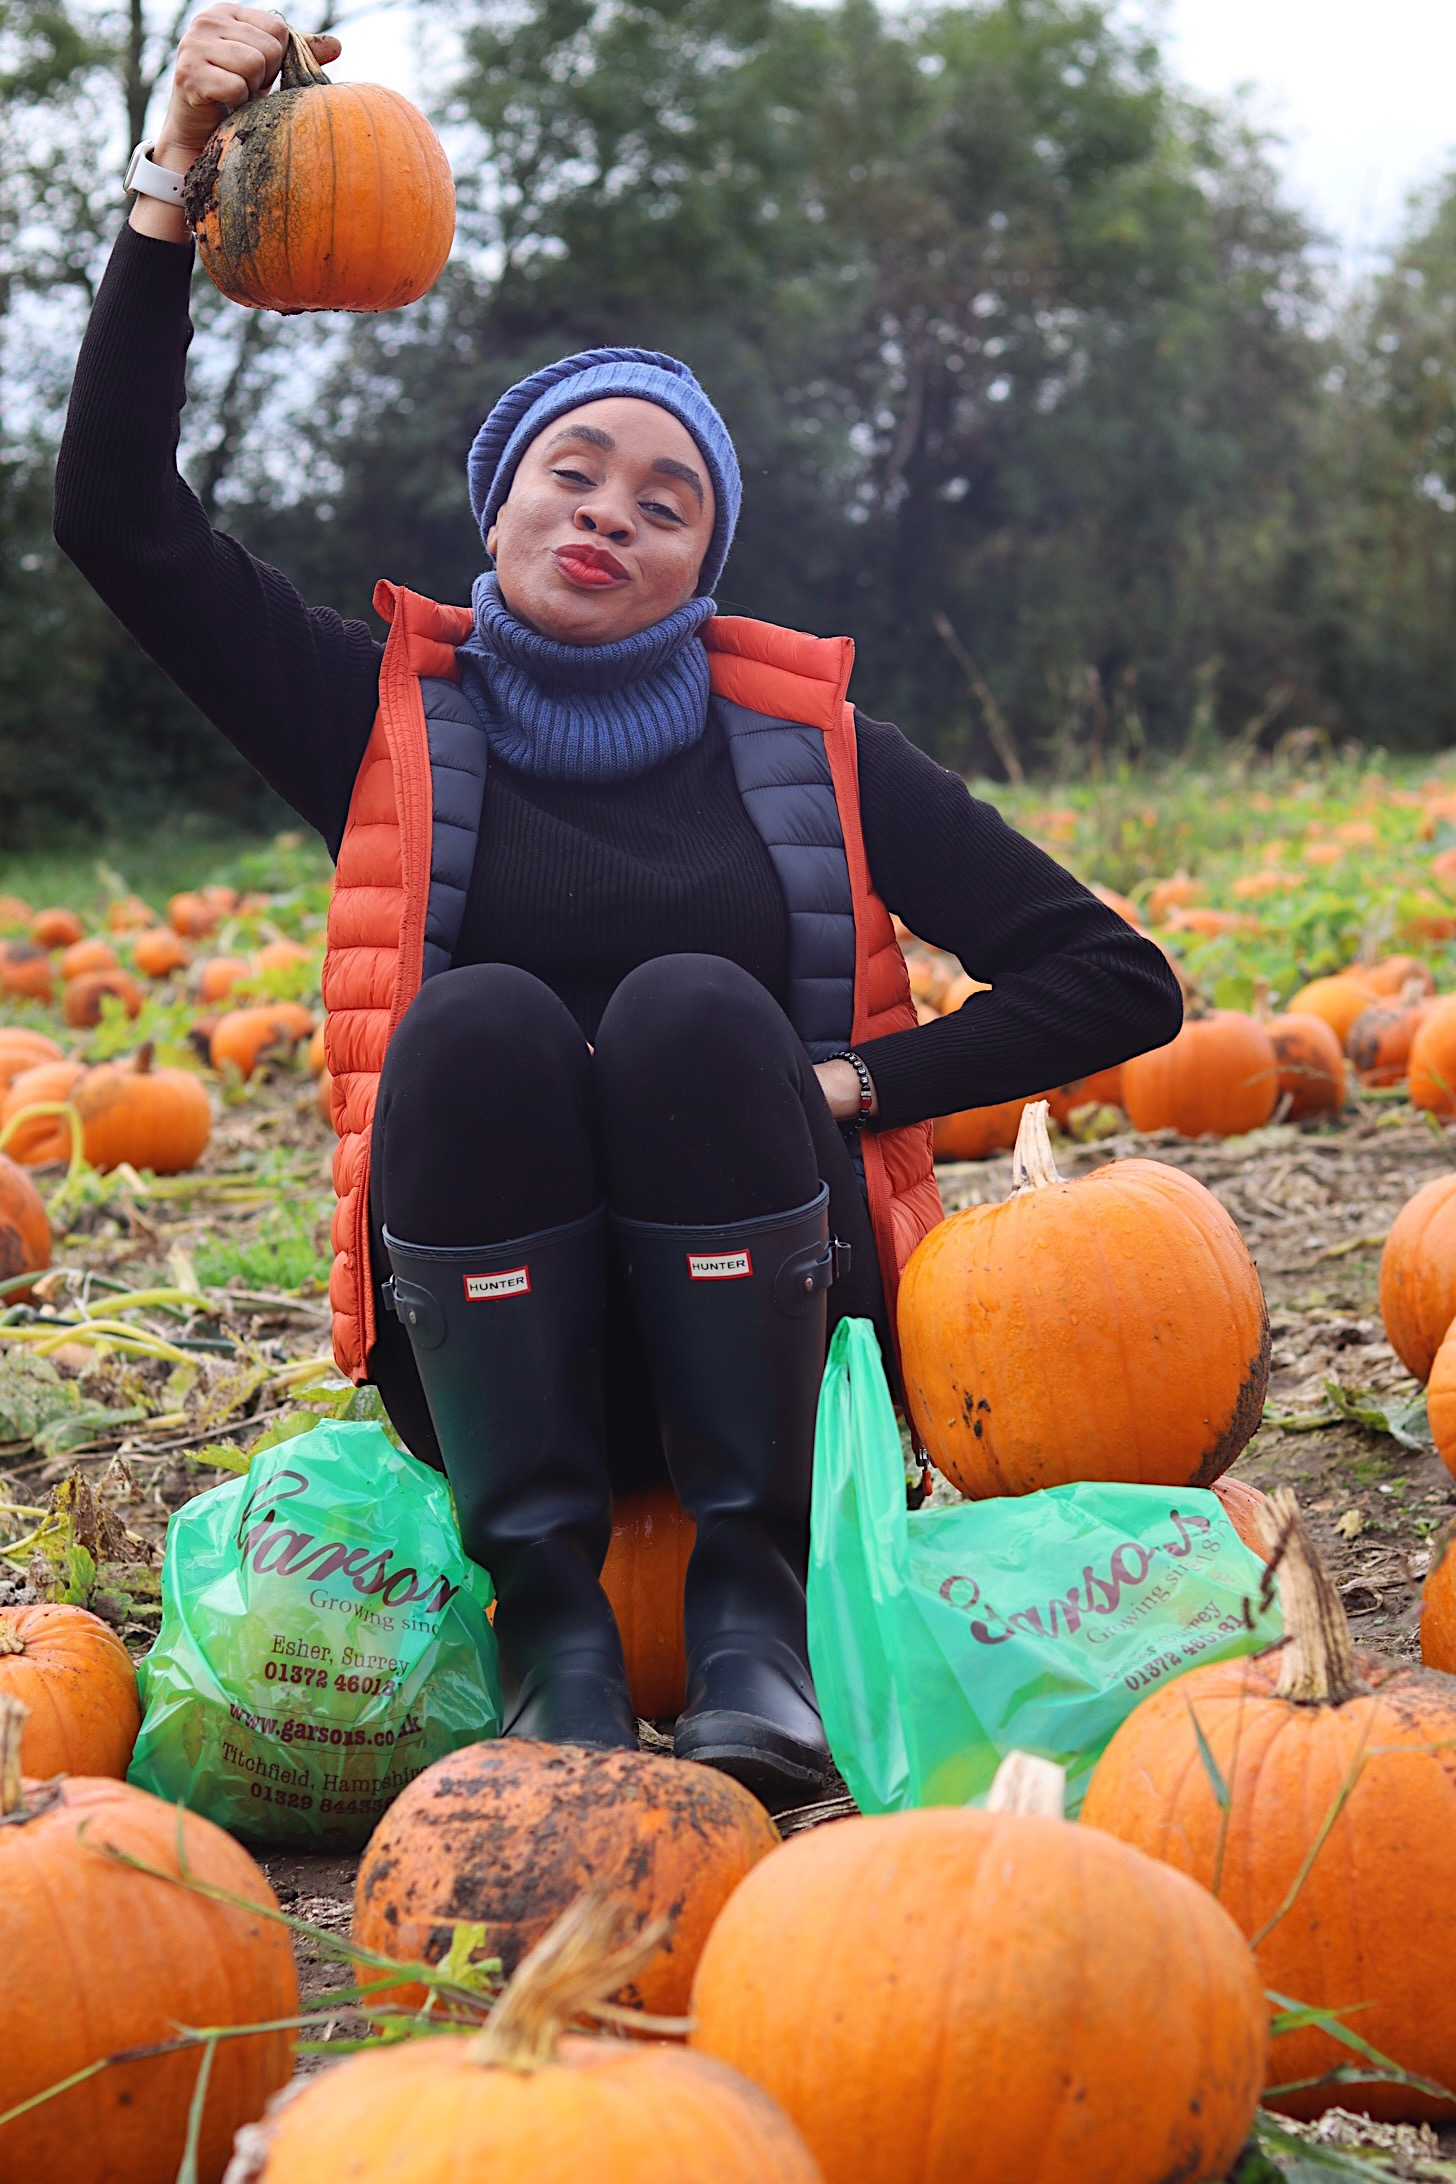 Pumpkin Picking In London?? – Where To Go